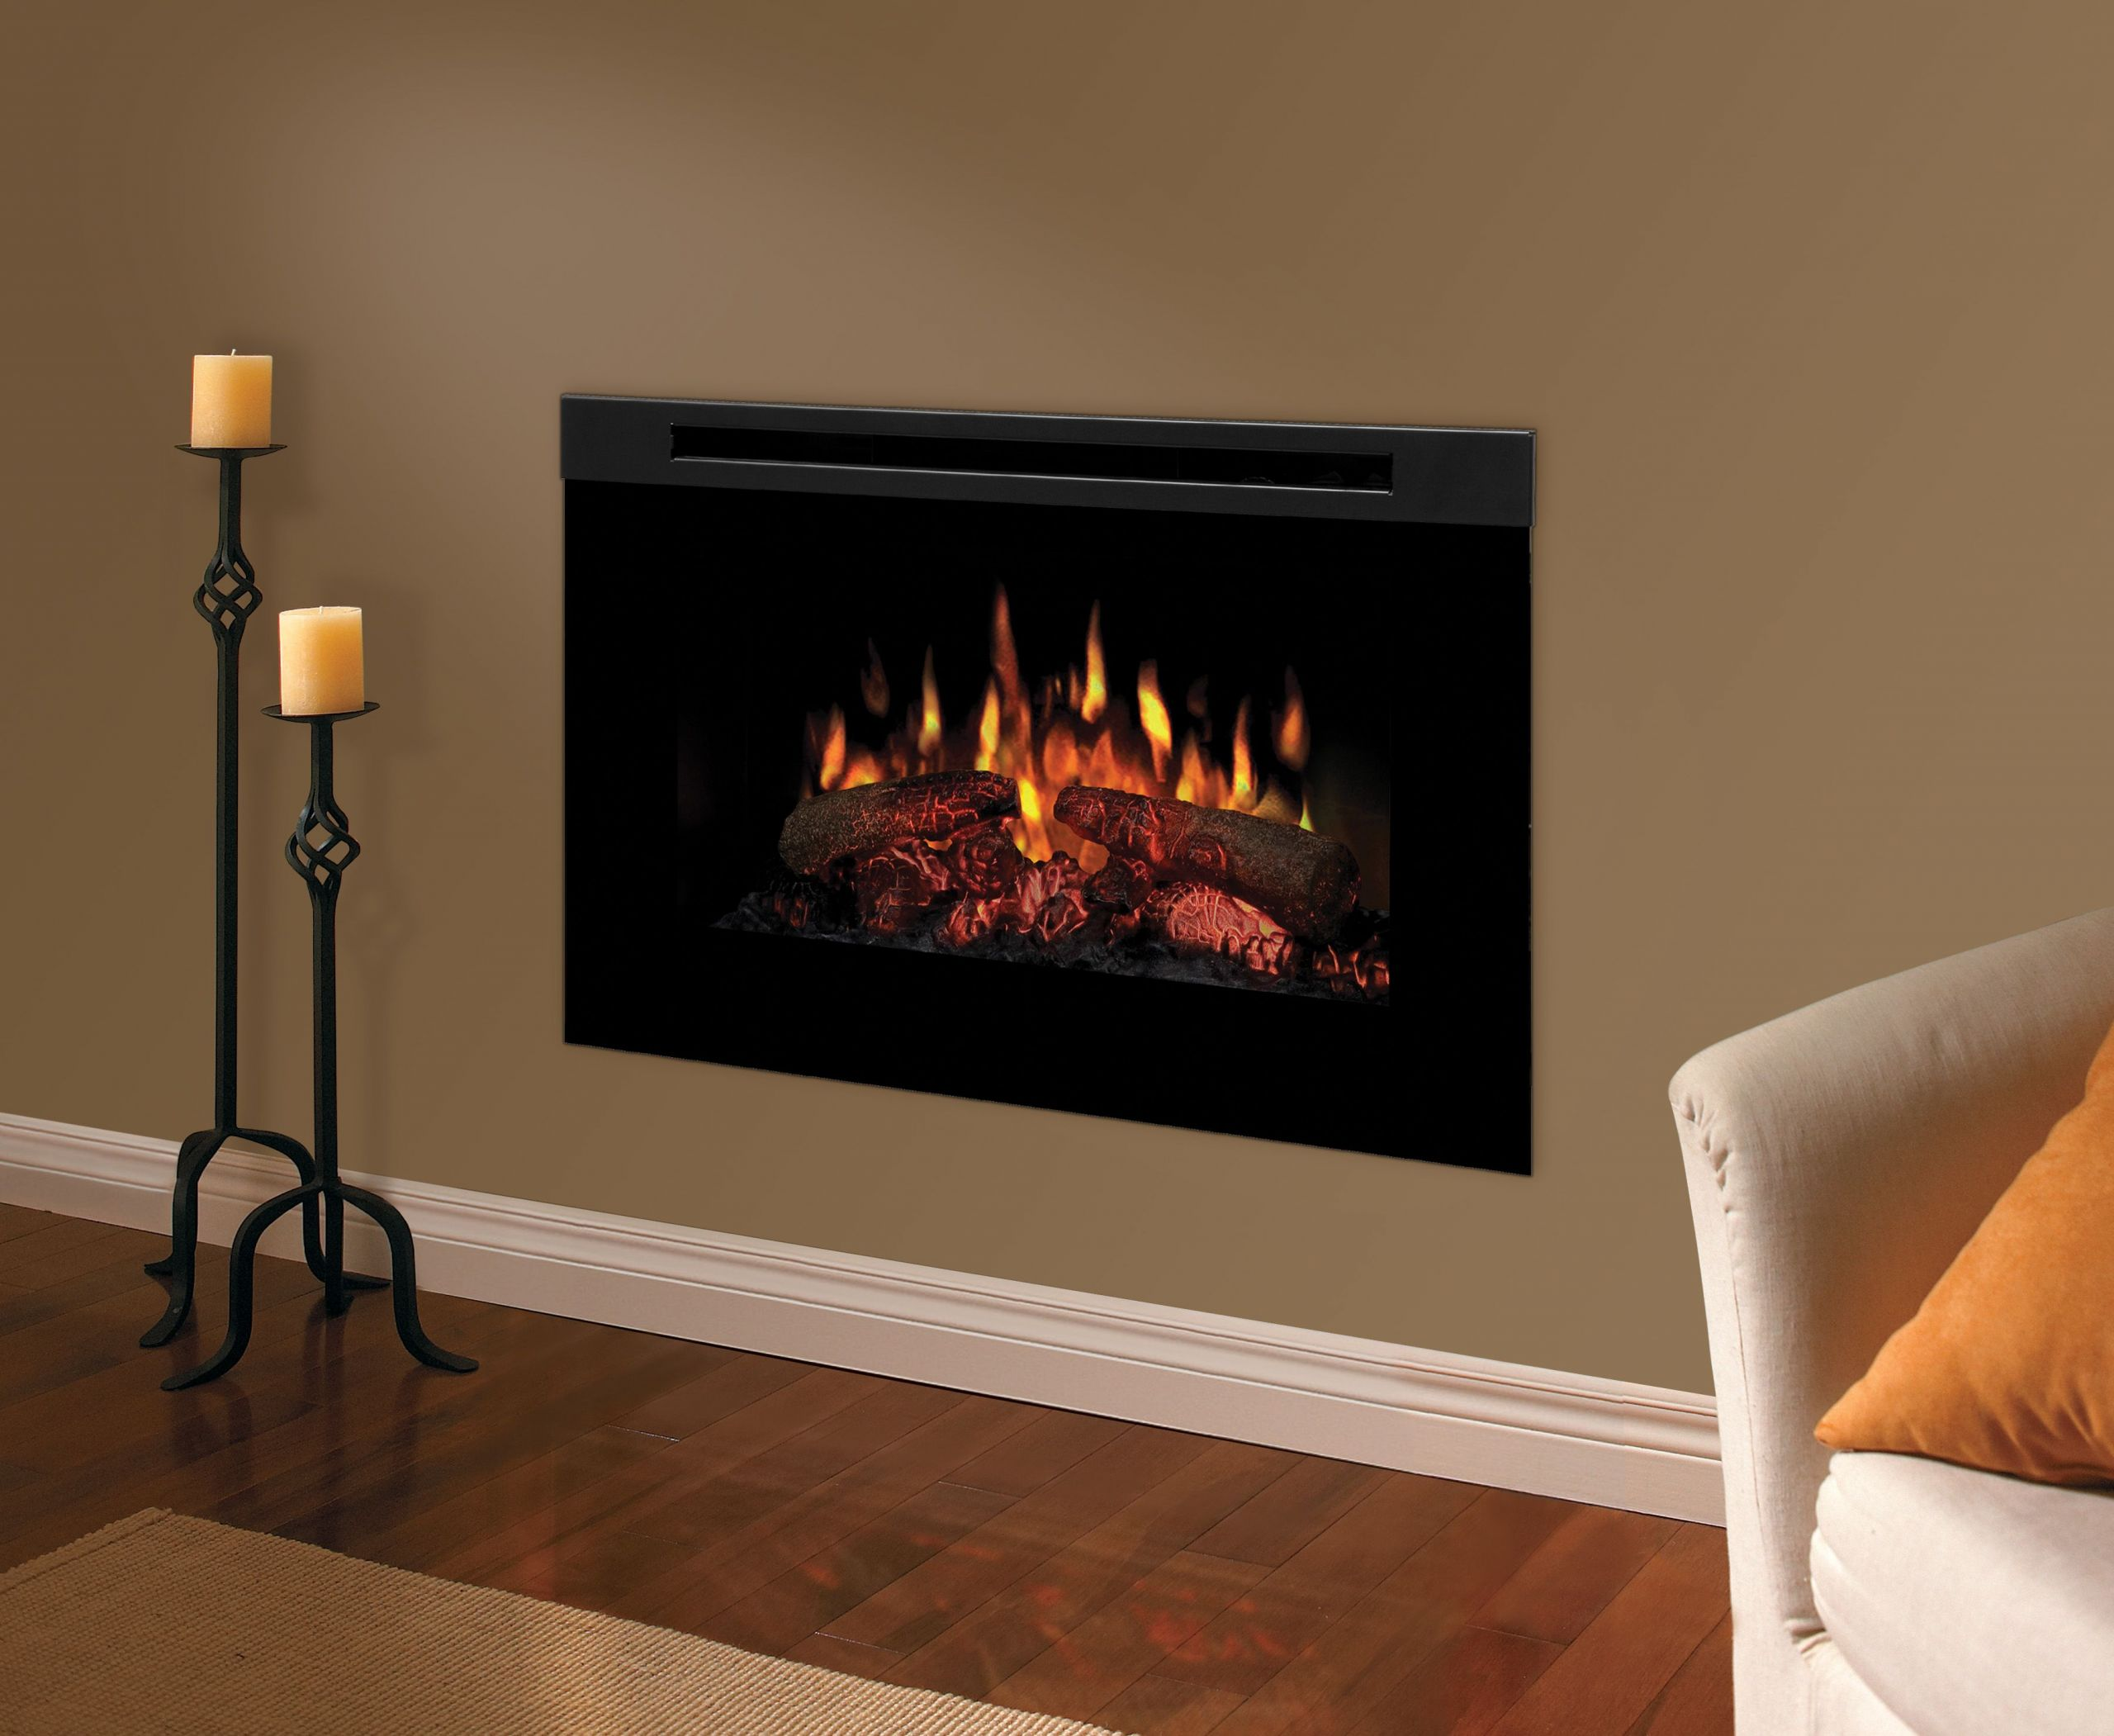 Fake Fireplaces Sale Beautiful Fireplaces for Tight Spots